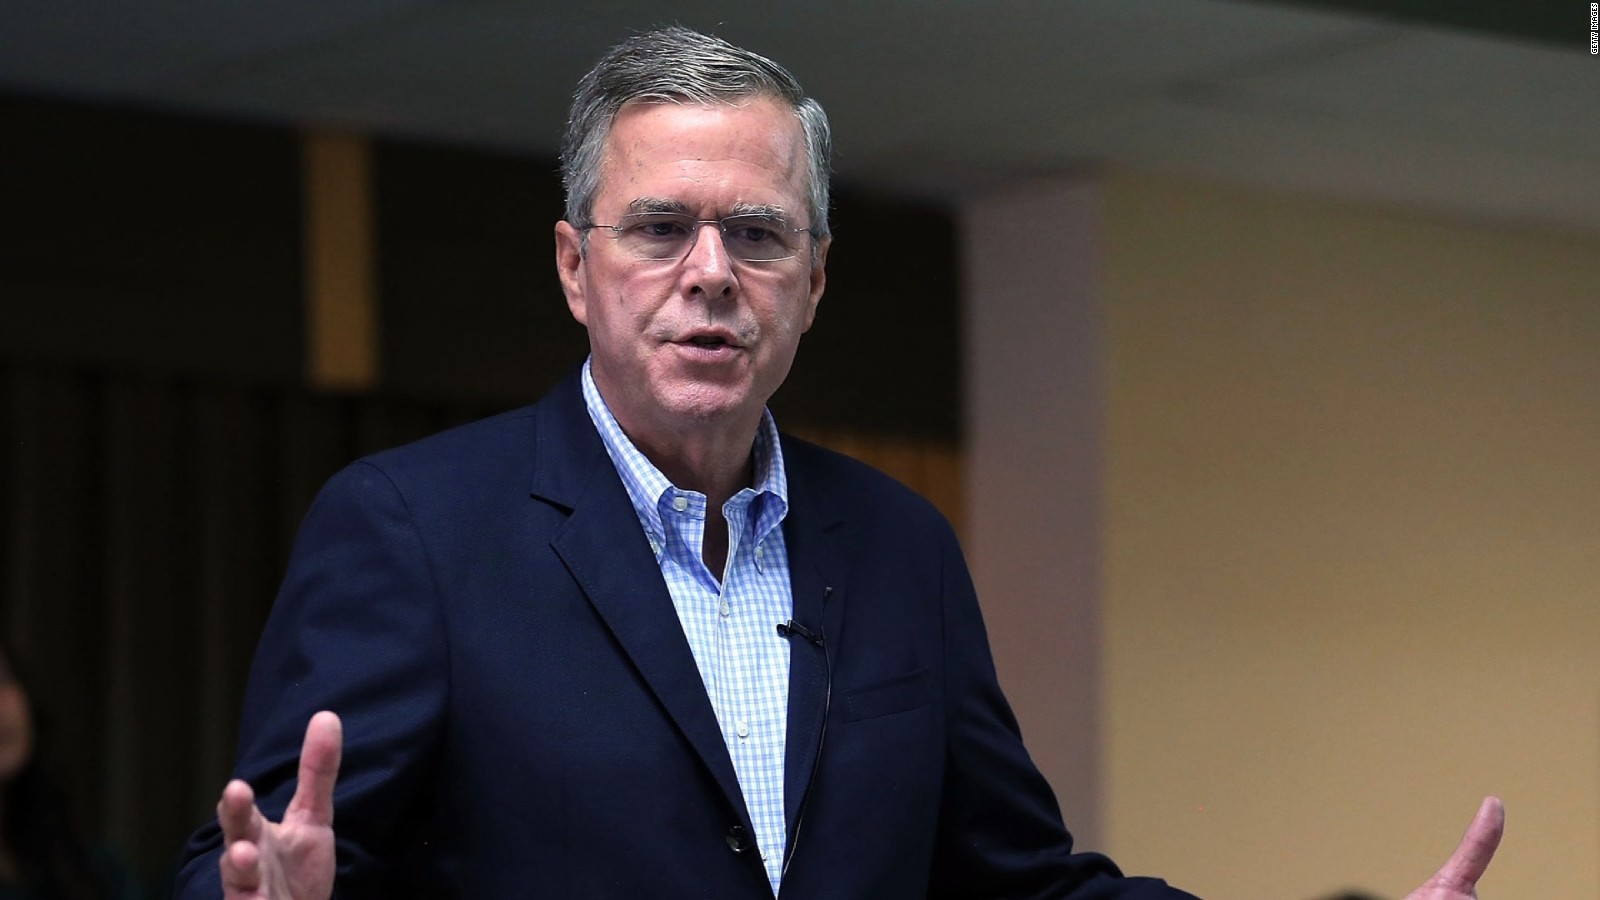 Bush has 'grave doubts' about Trump as commander in chief